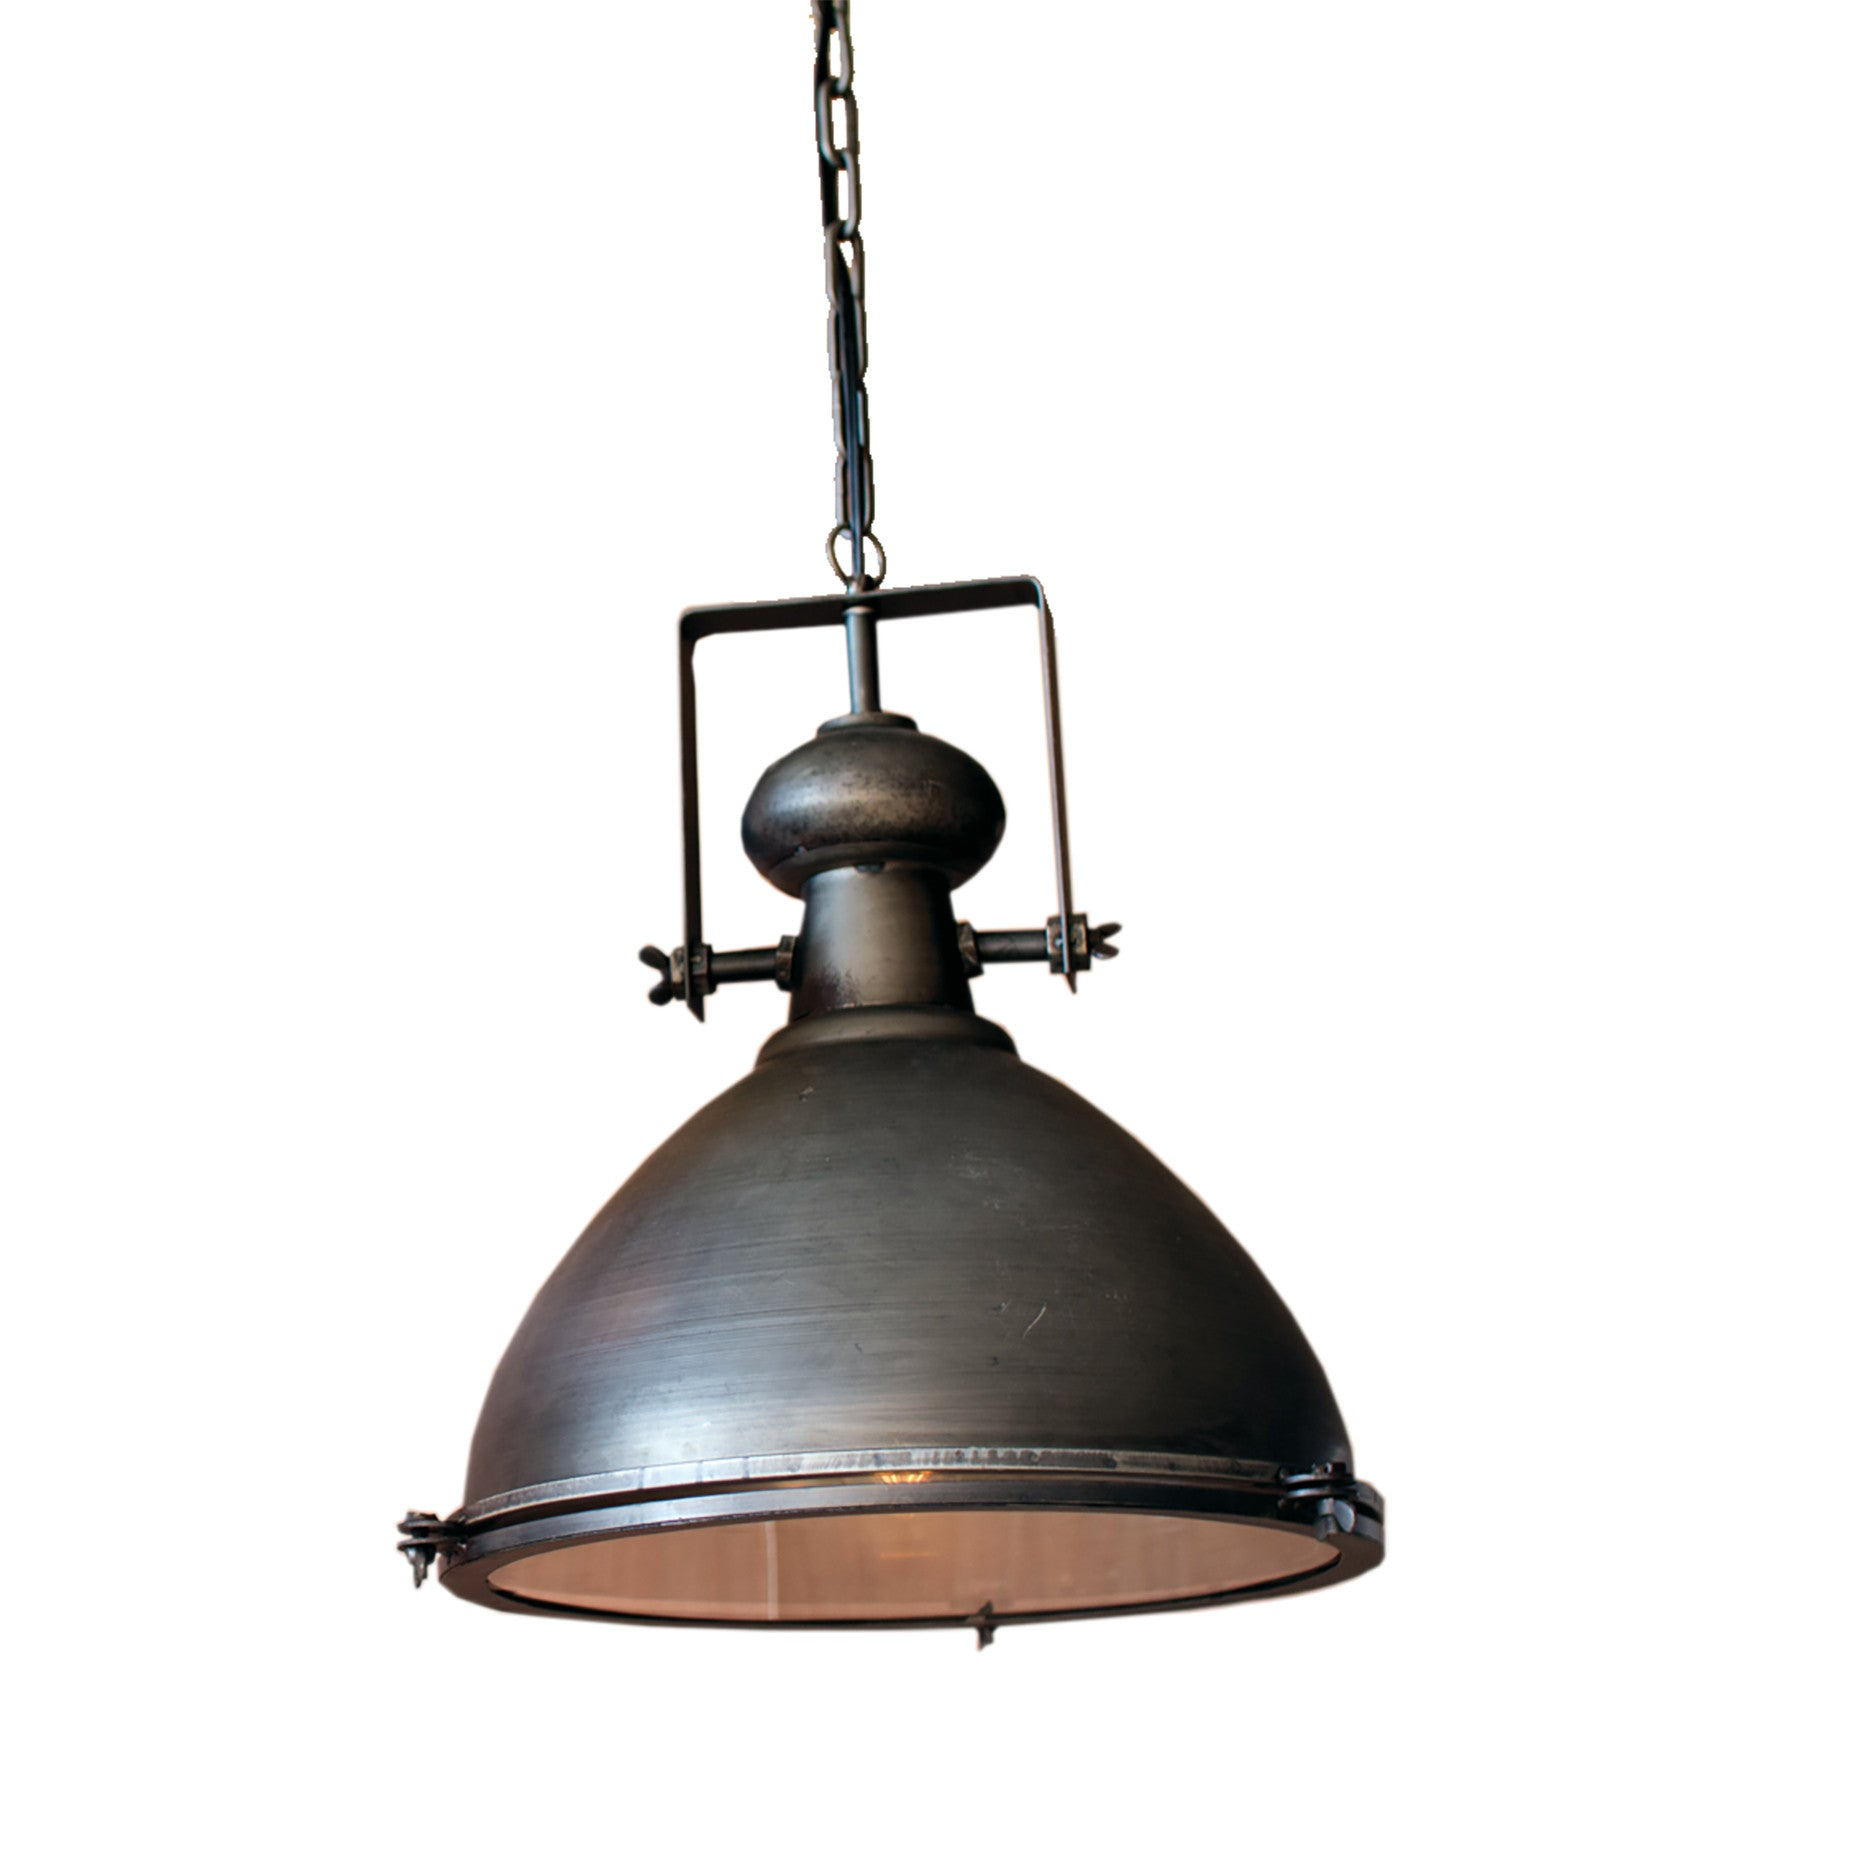 lighting fixtures pendant myannahazare light metal hanging